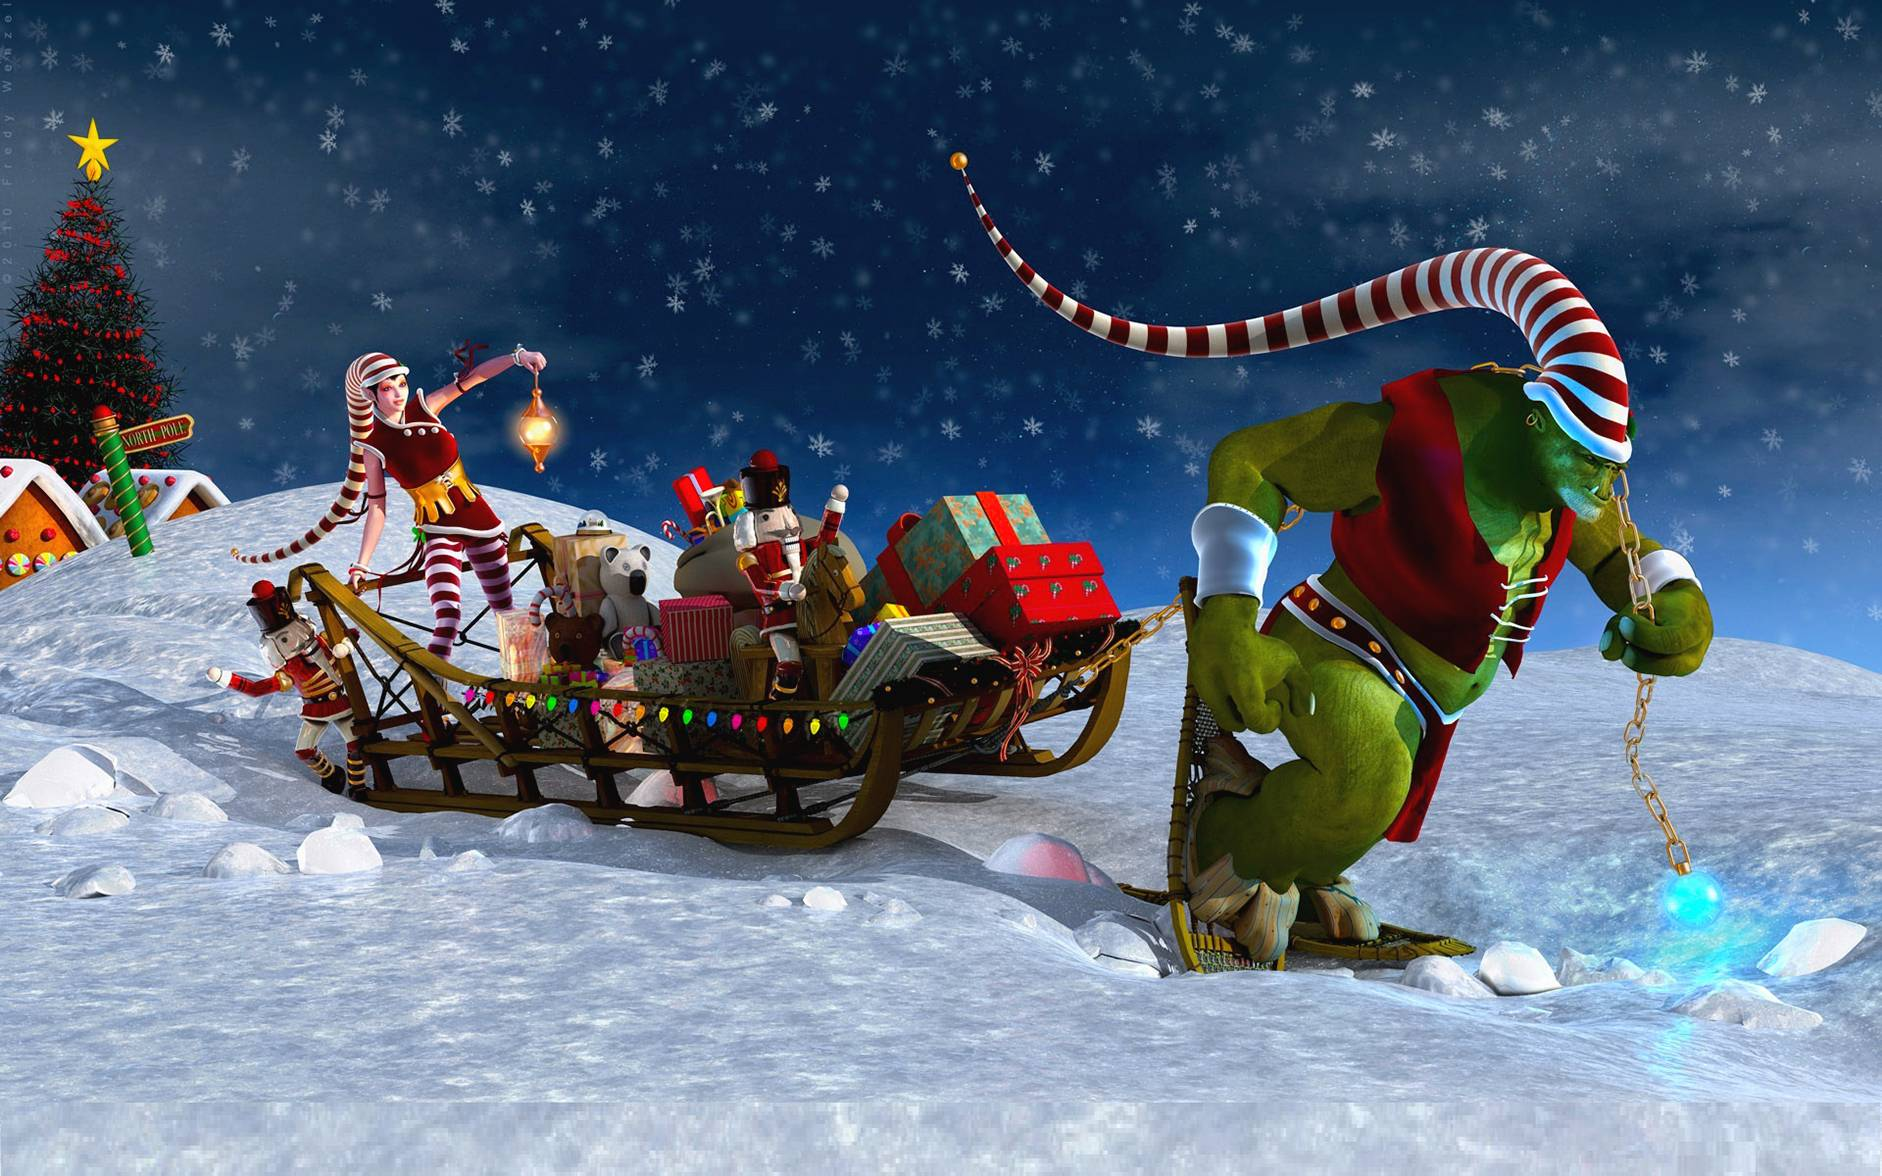 grinch wallpapers hd - photo #22